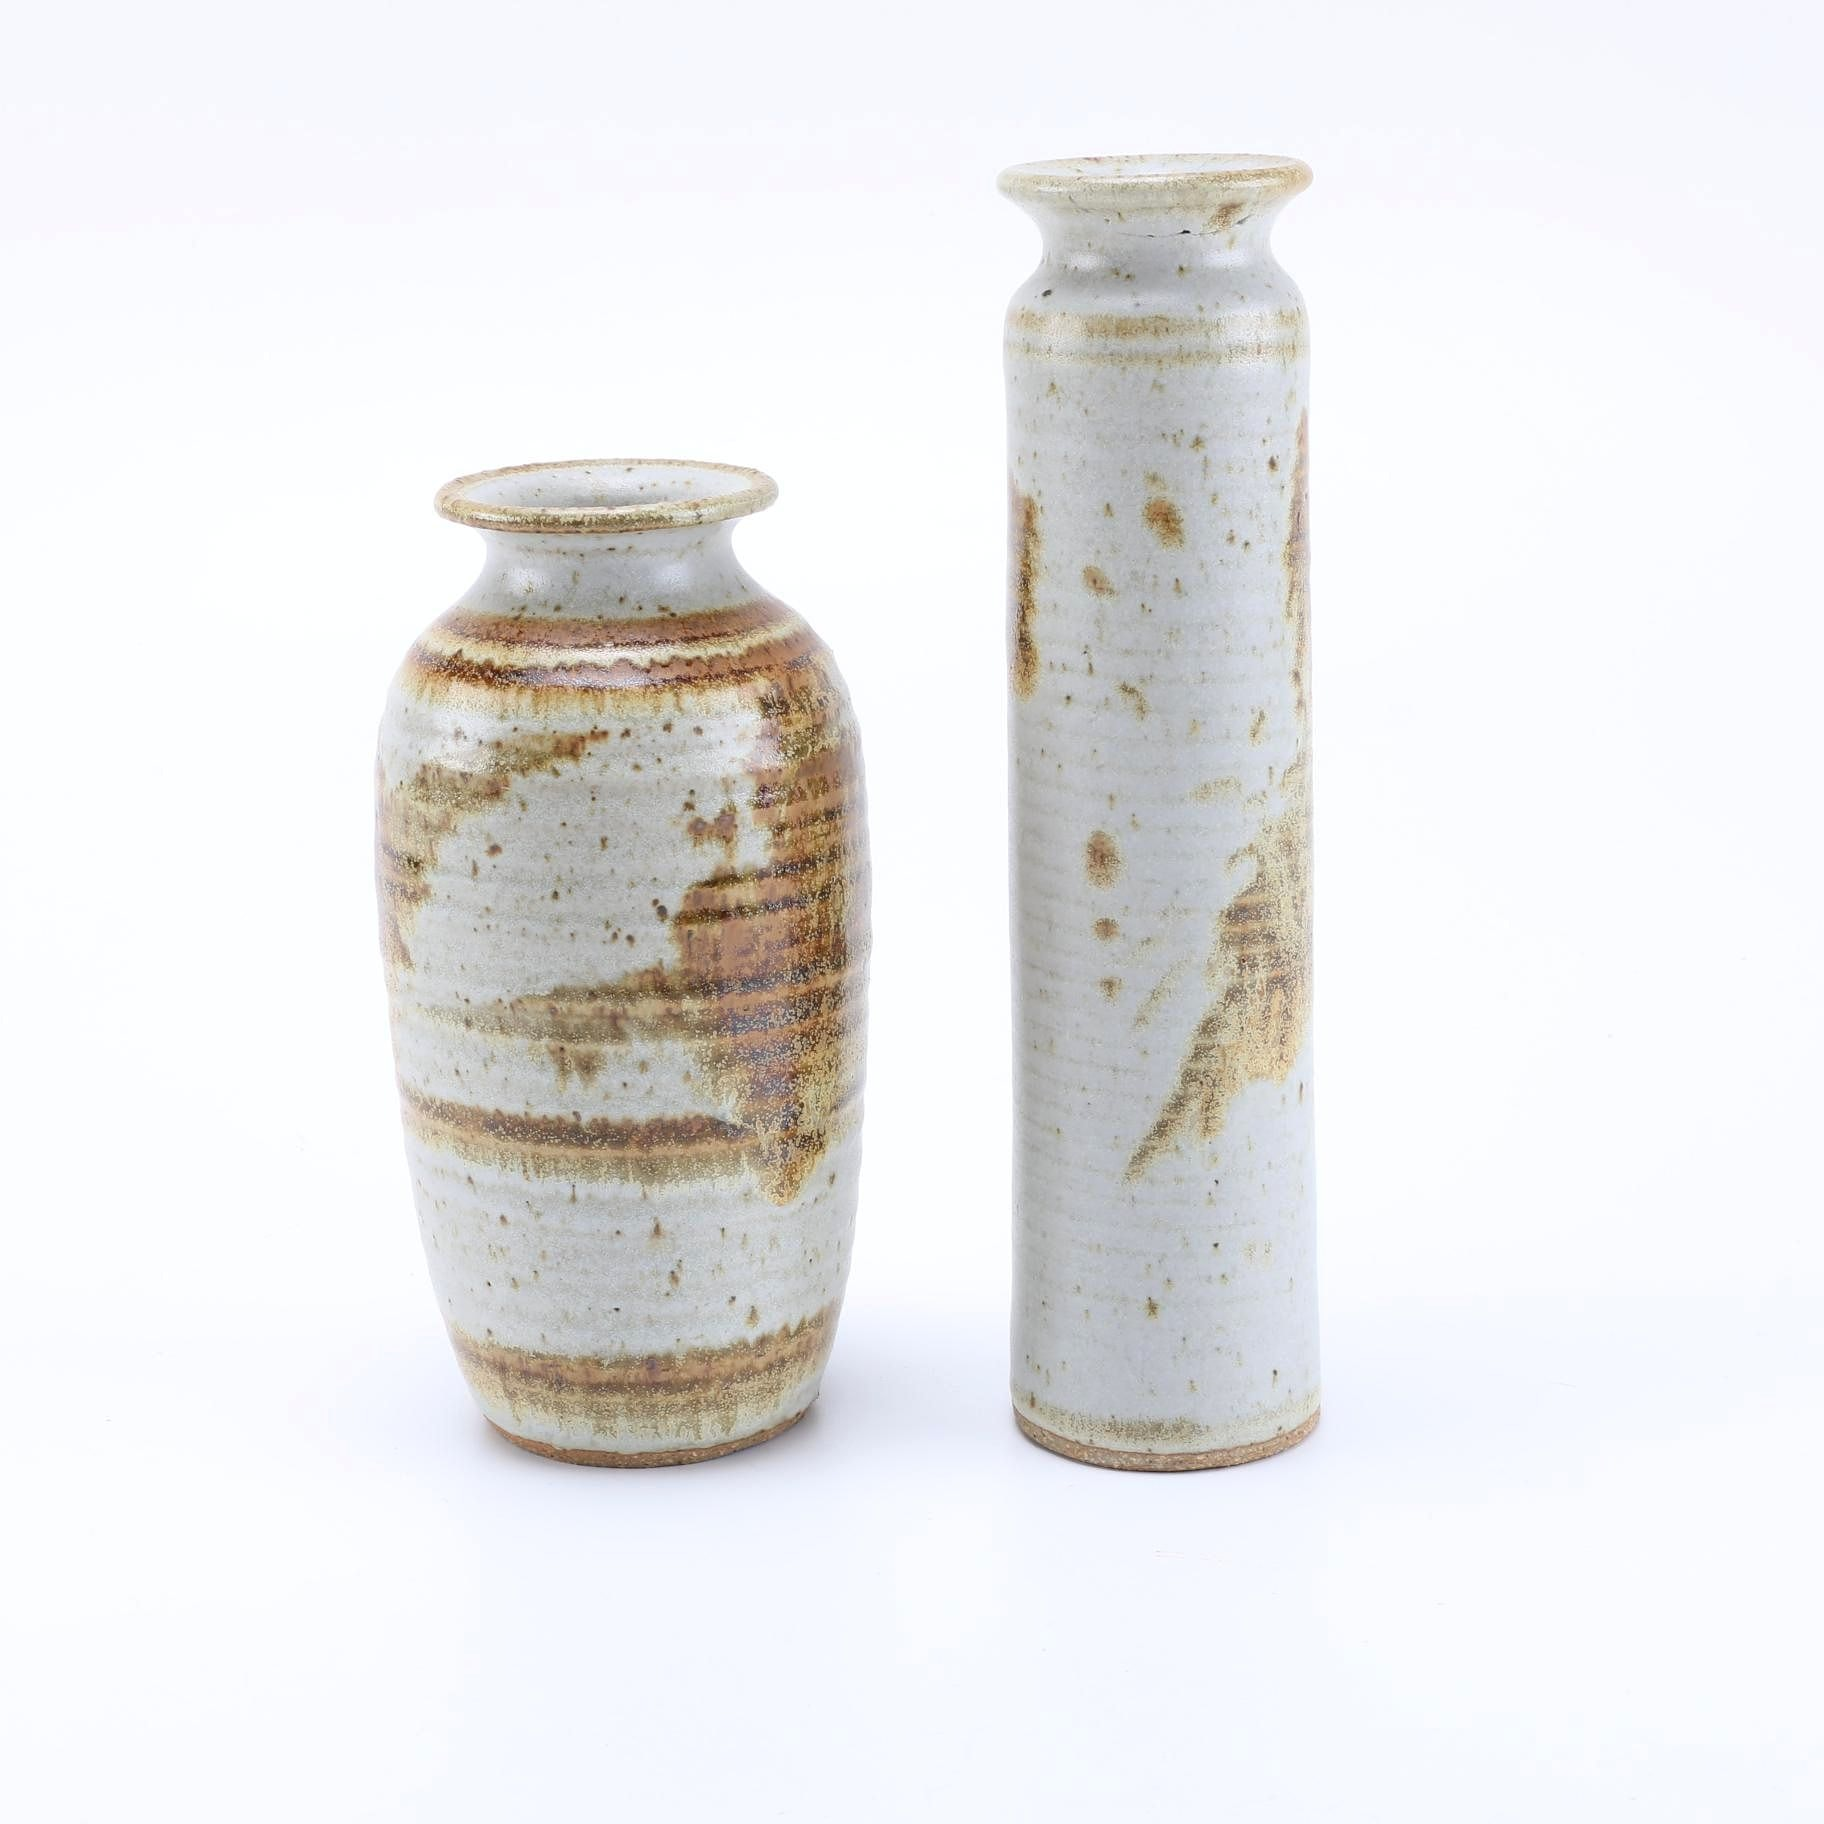 Pair of J. Clark Hand Thrown Stoneware Vases